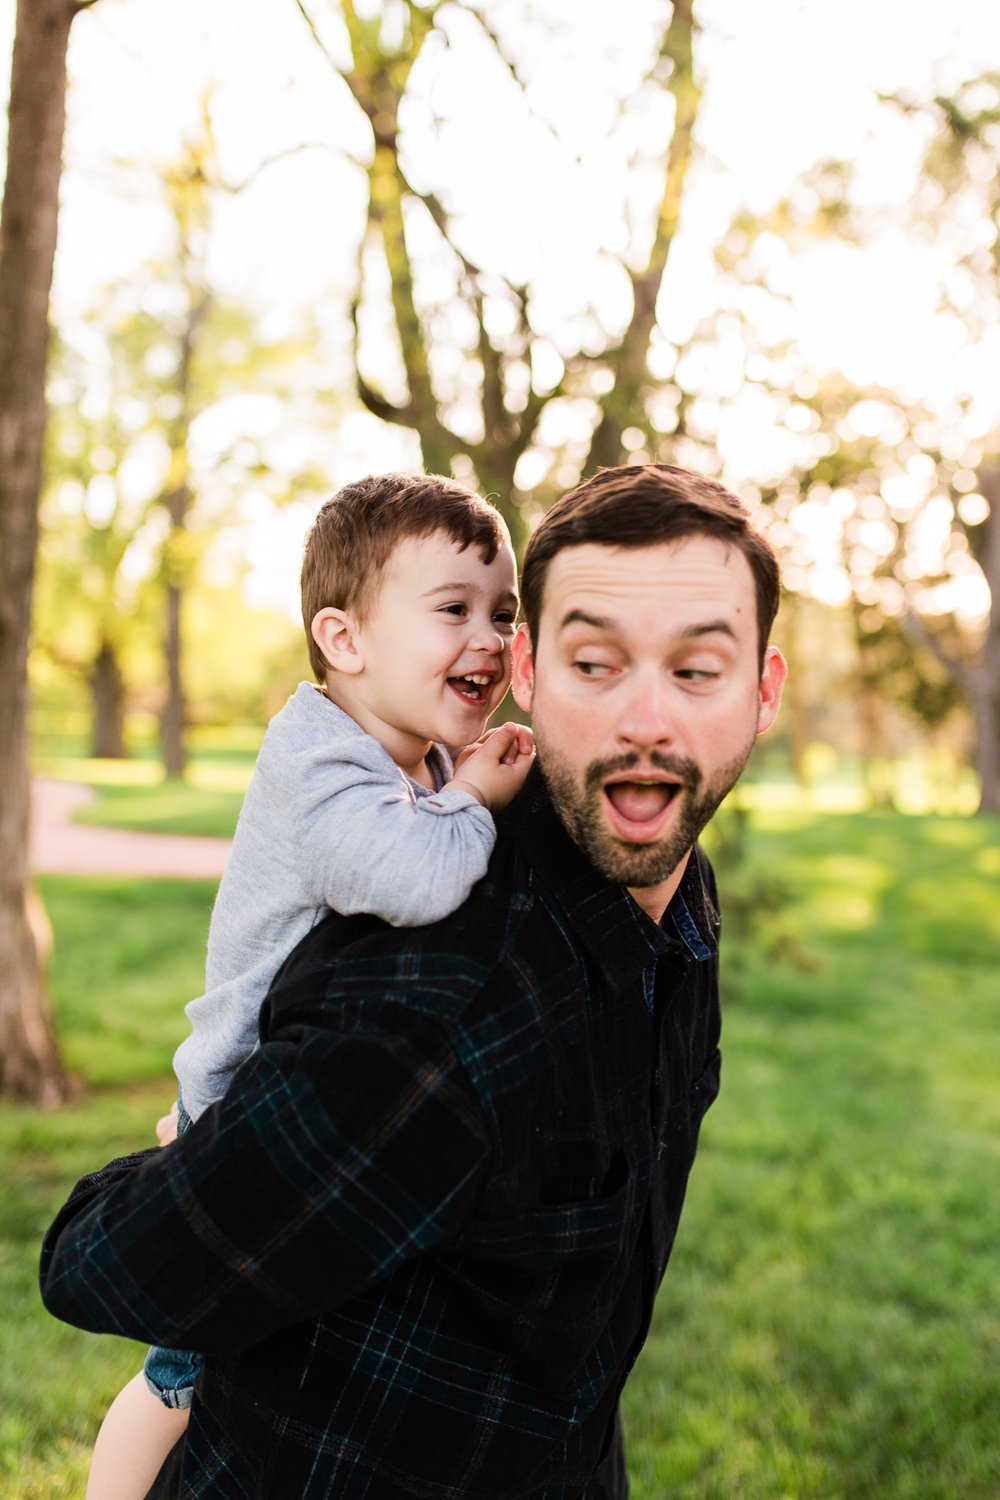 Father gives his son a piggyback ride in the park, Kansas City lifestyle photographer, Rebecca Clair Photography